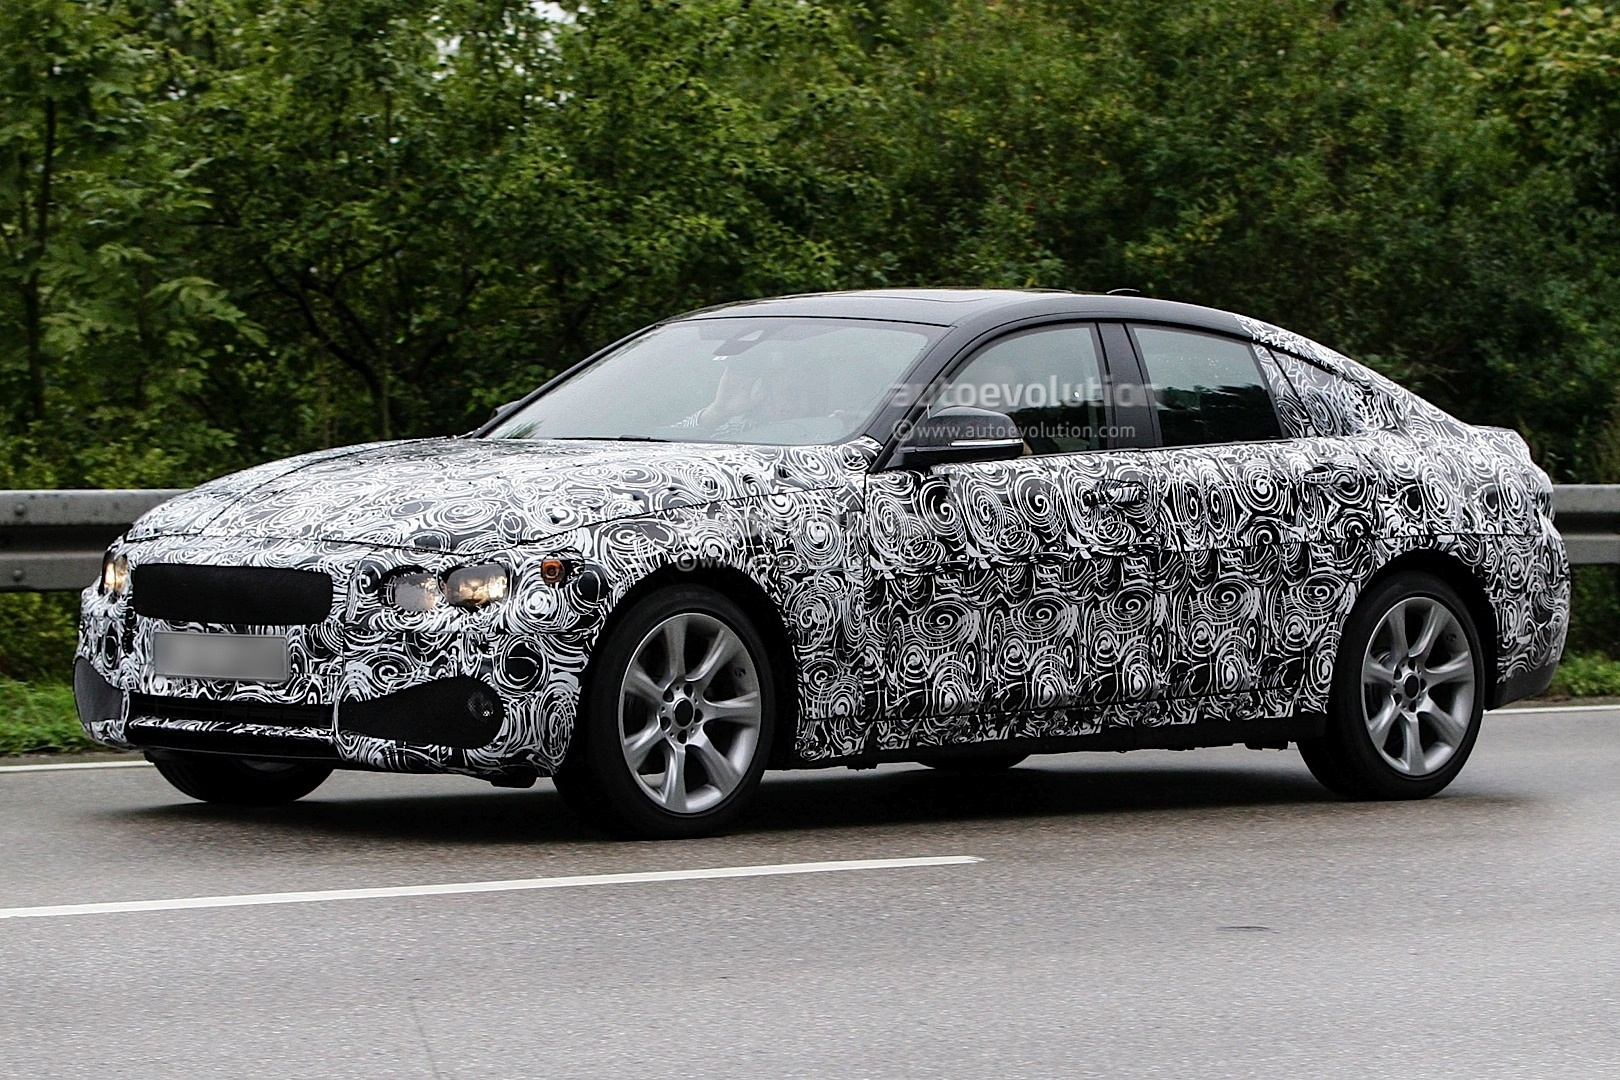 2013 Bmw 3 Series Gt Revealed In New Spy Shots Gallery 1 ...